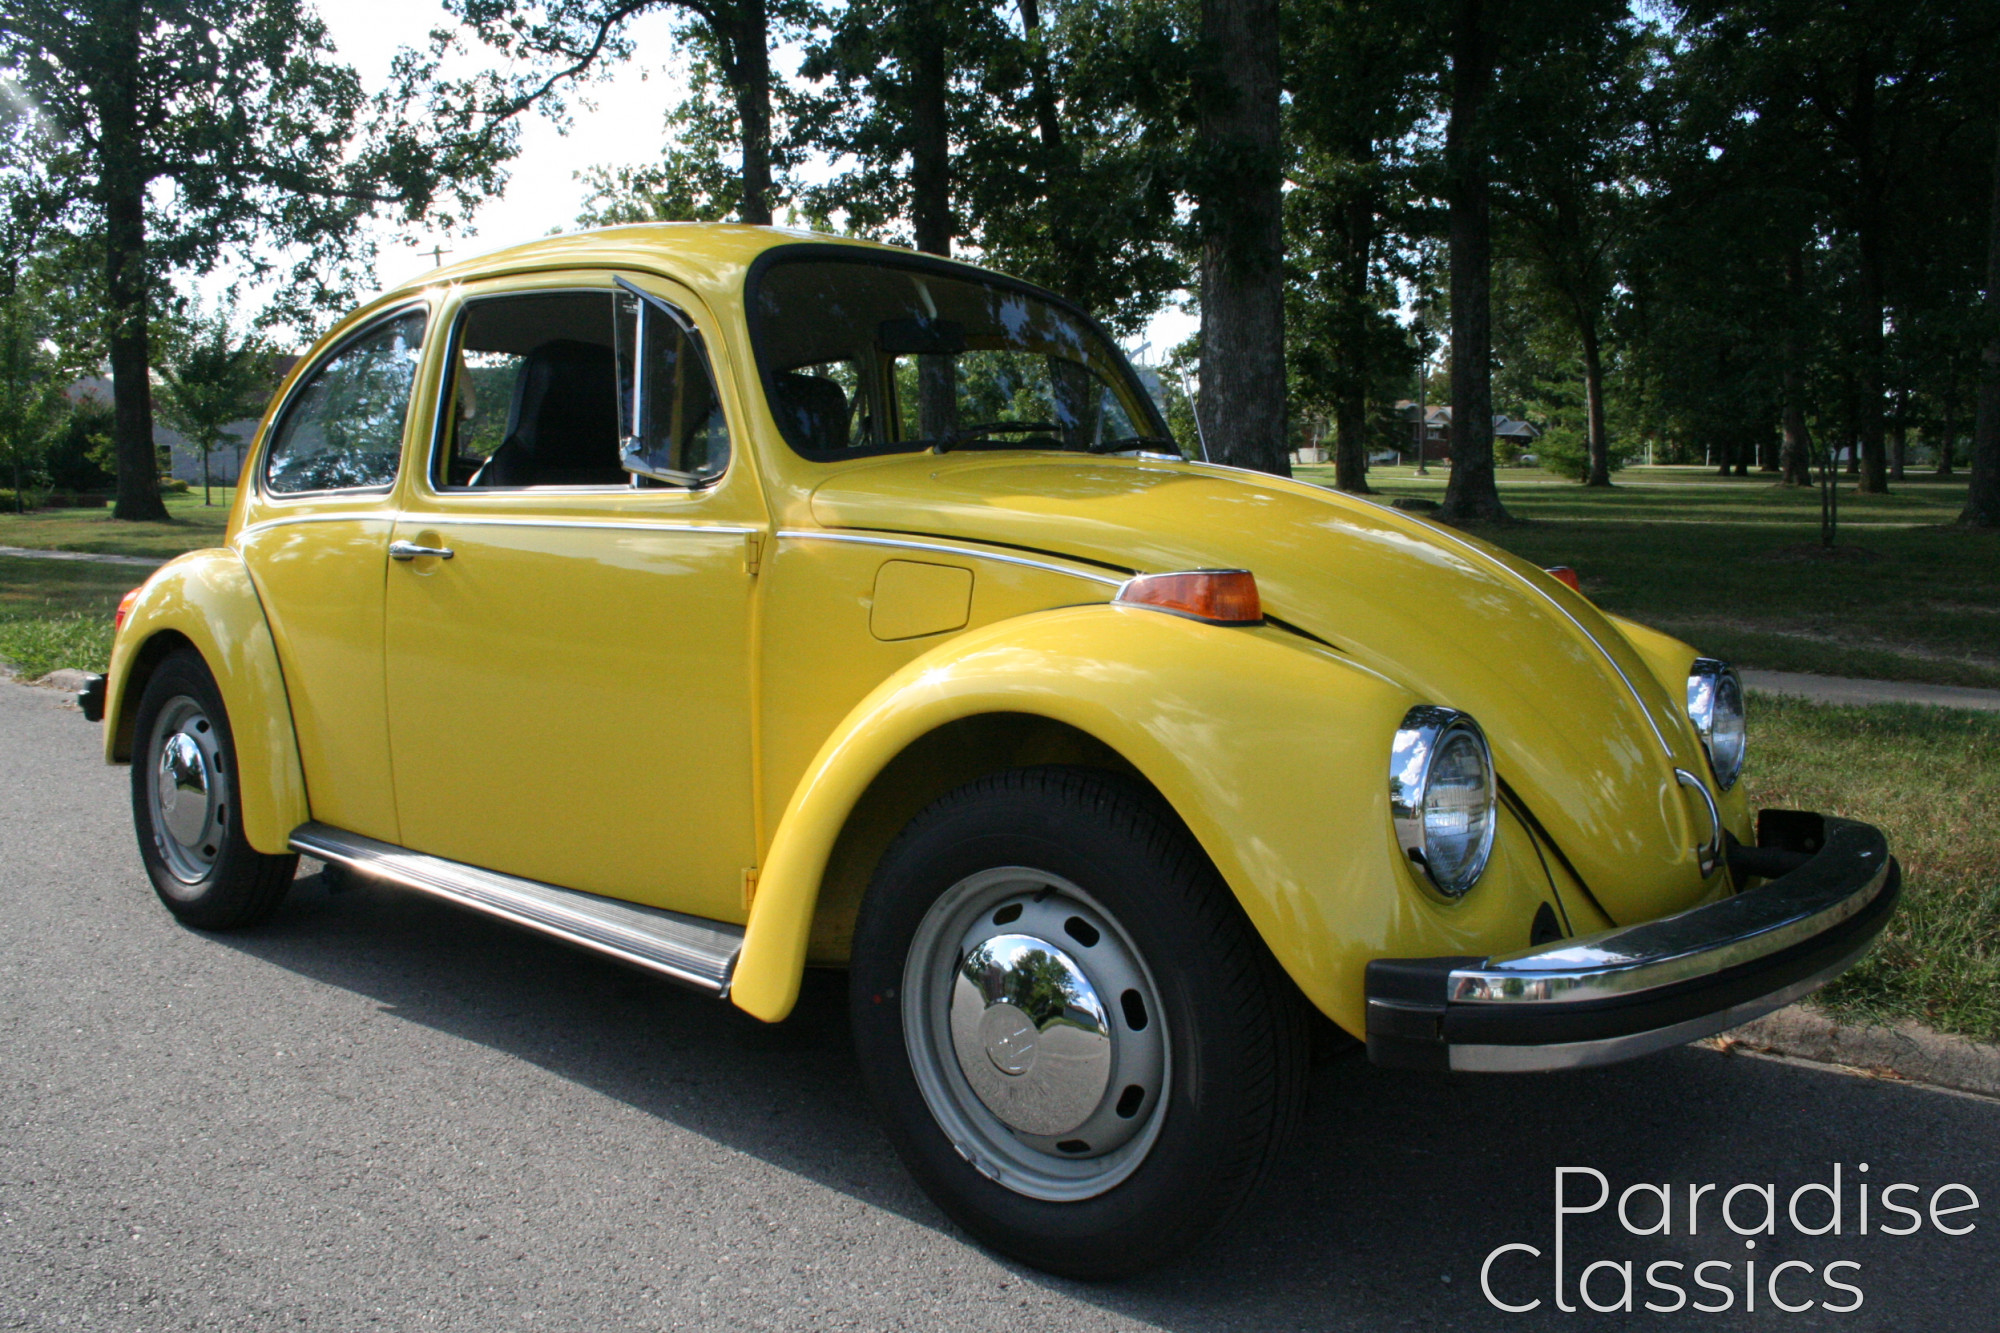 1974 Volkswagen Beetle For Sale At Paradise Classics